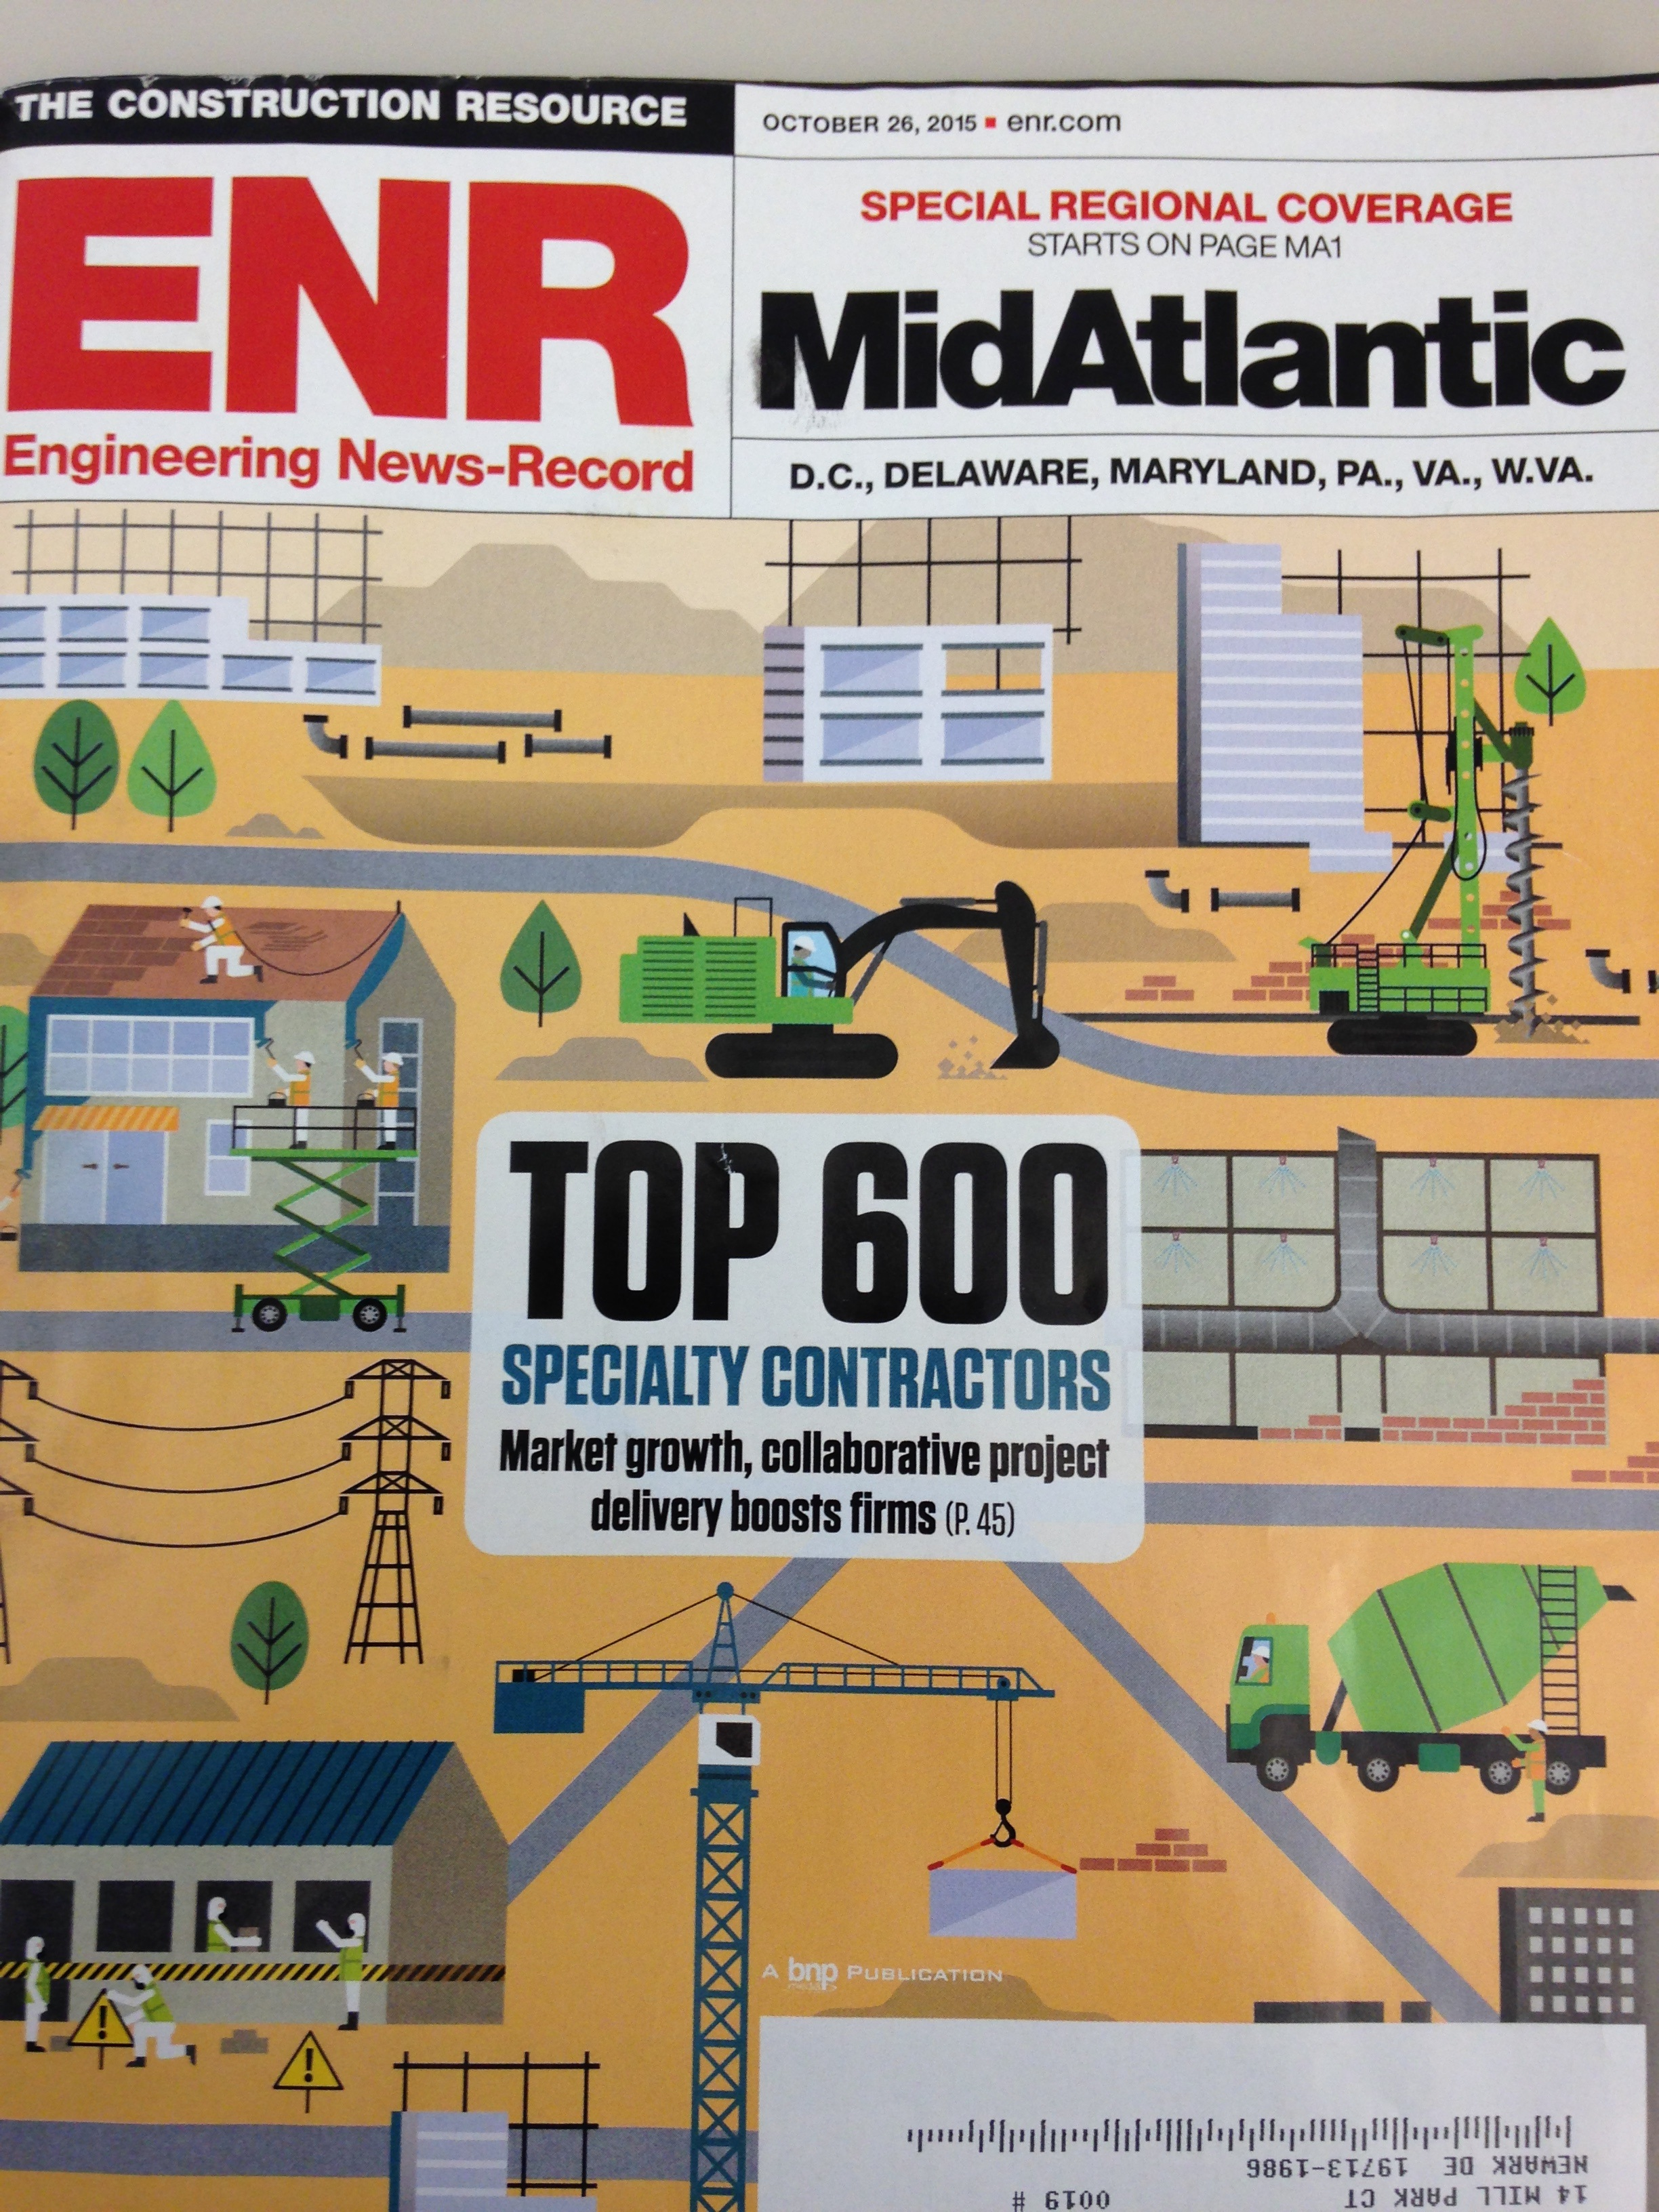 Nickle jumps 31 places on ENR Magazine's Top 600 Specialty Contractor list